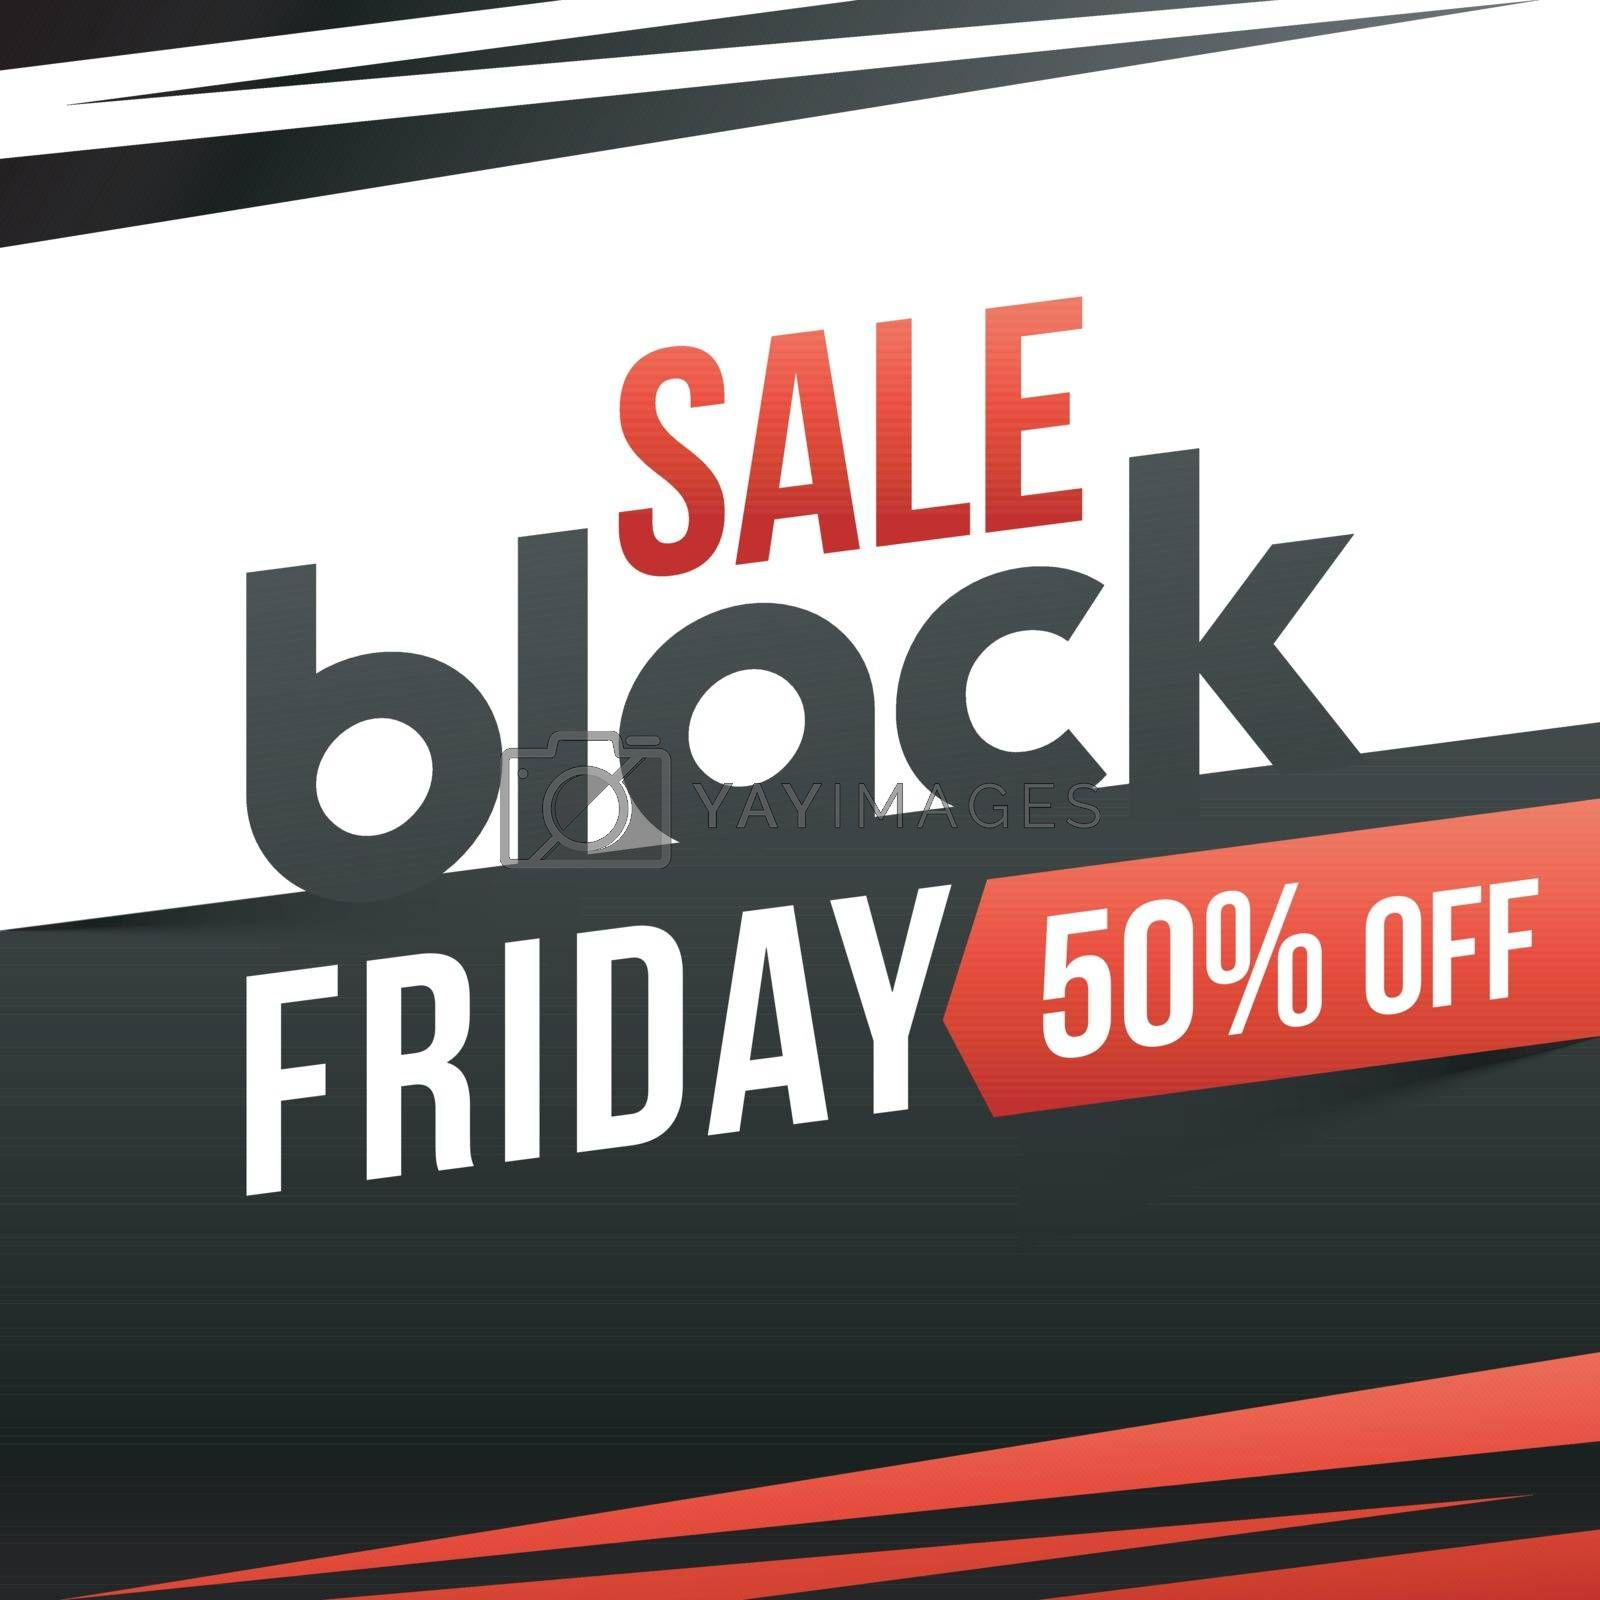 Advertising template or flyer design with 50% discount offer on Black Friday Sale.